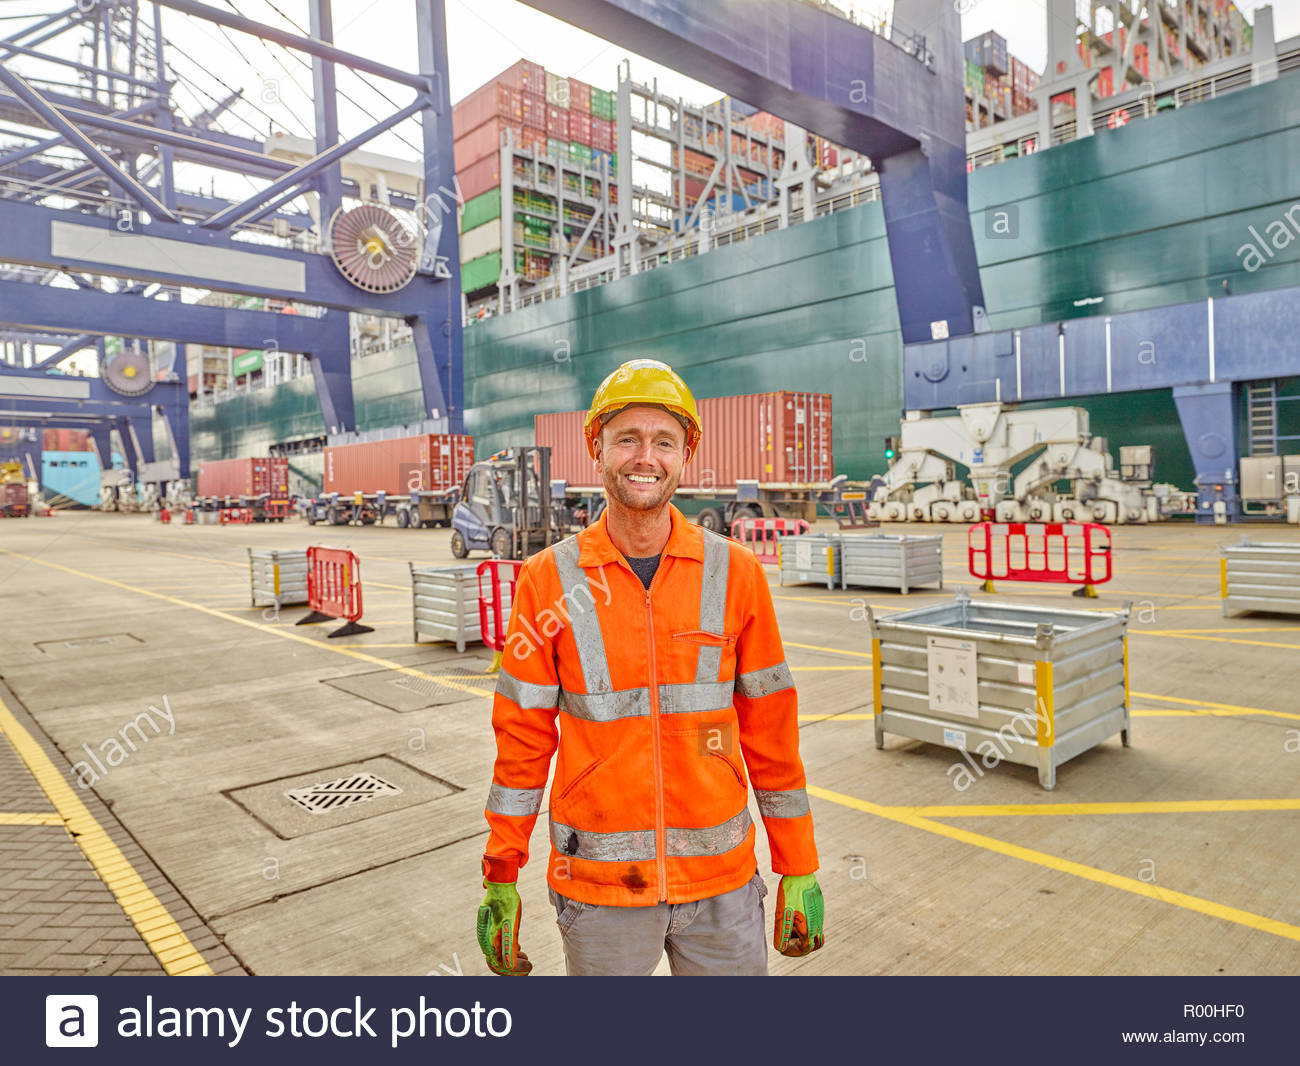 Smiling dock worker in reflective clothing and hard hat - Stock Image